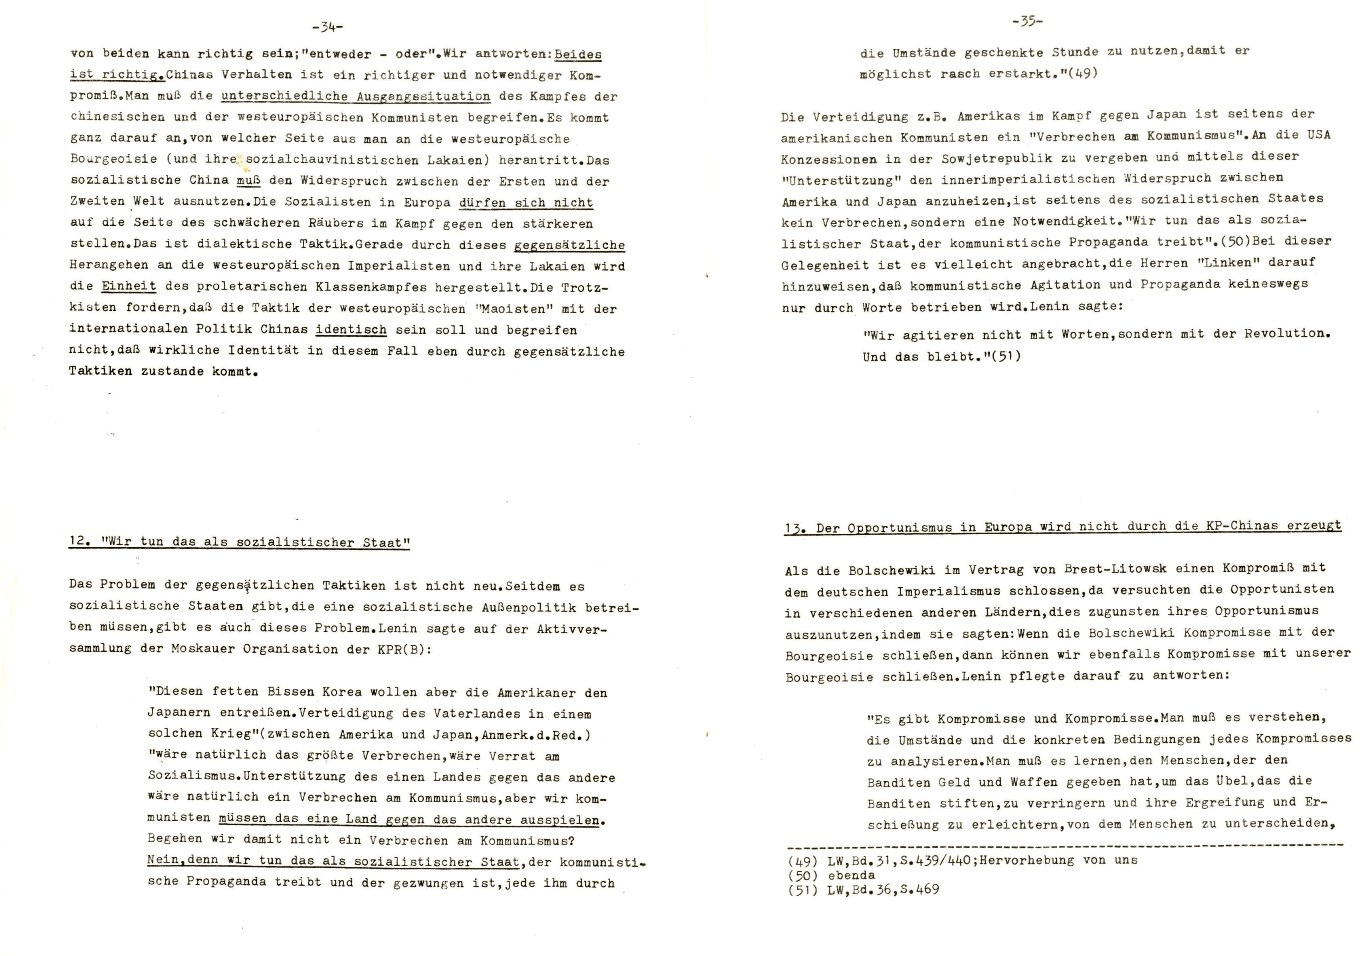 Muenchen_Kampf_dem_Revisionismus_1978_04_05_19